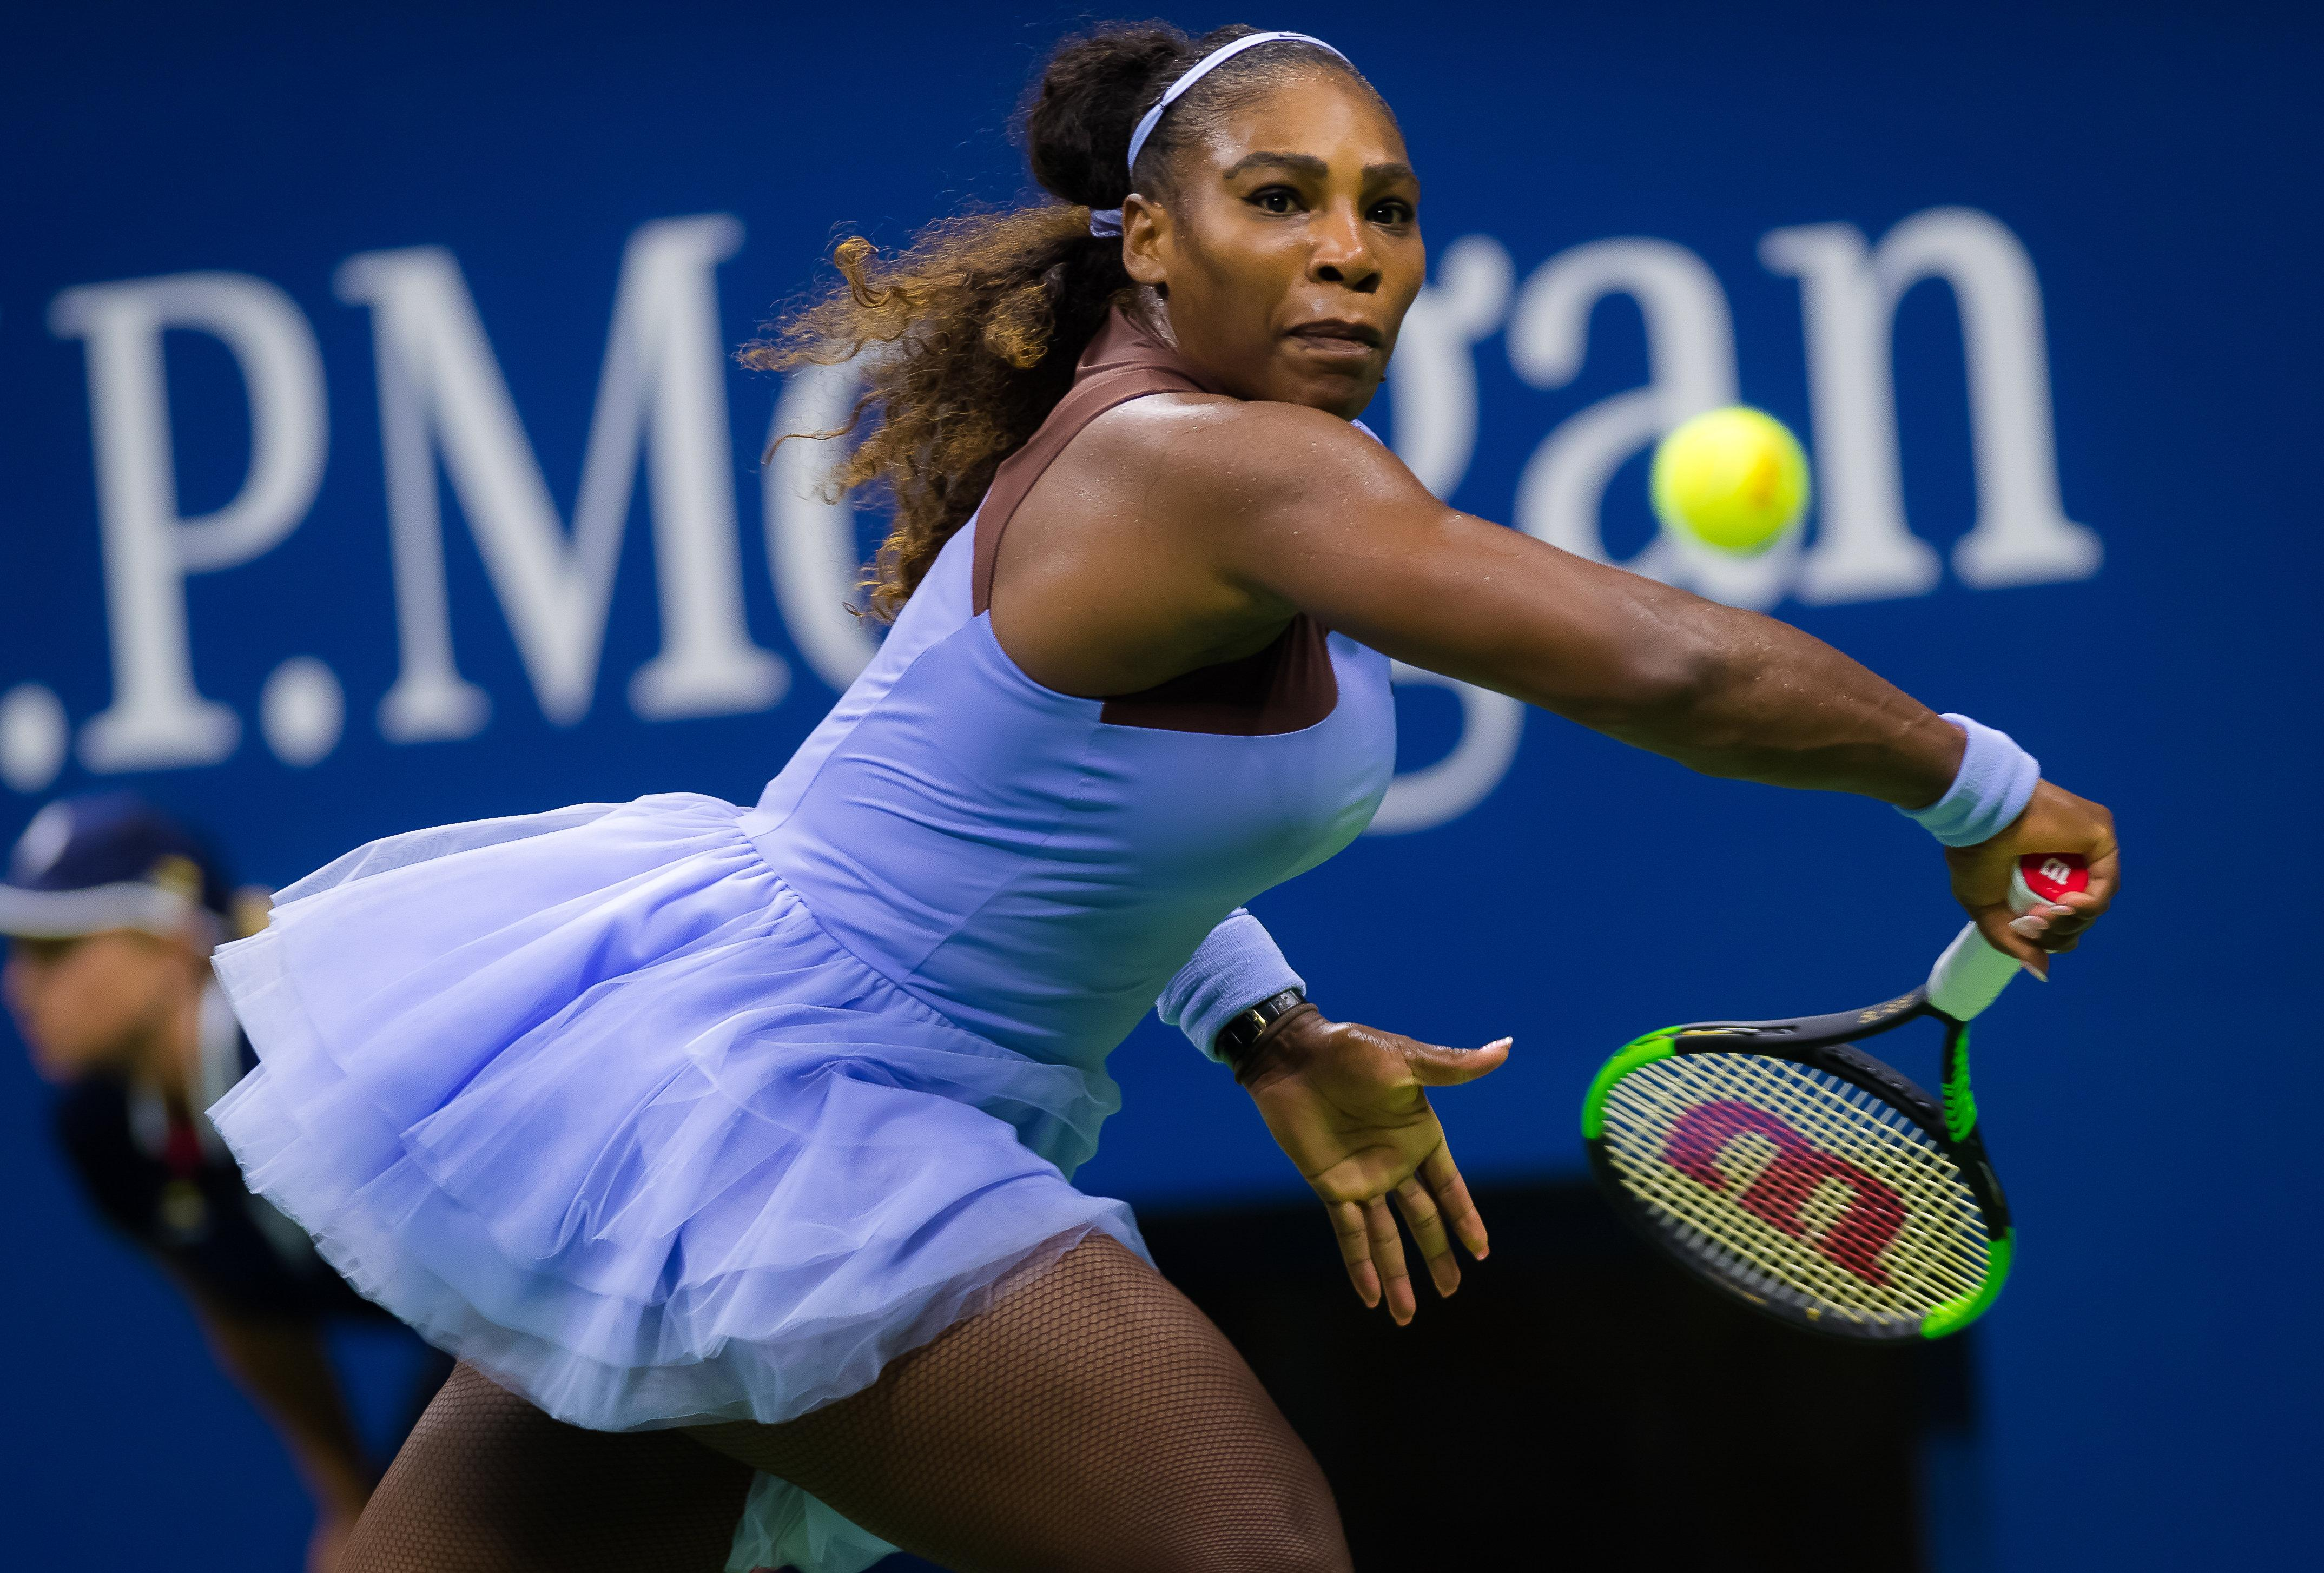 Serena Williams is targeting her 24th Grand Slam title to go level with Margaret Court